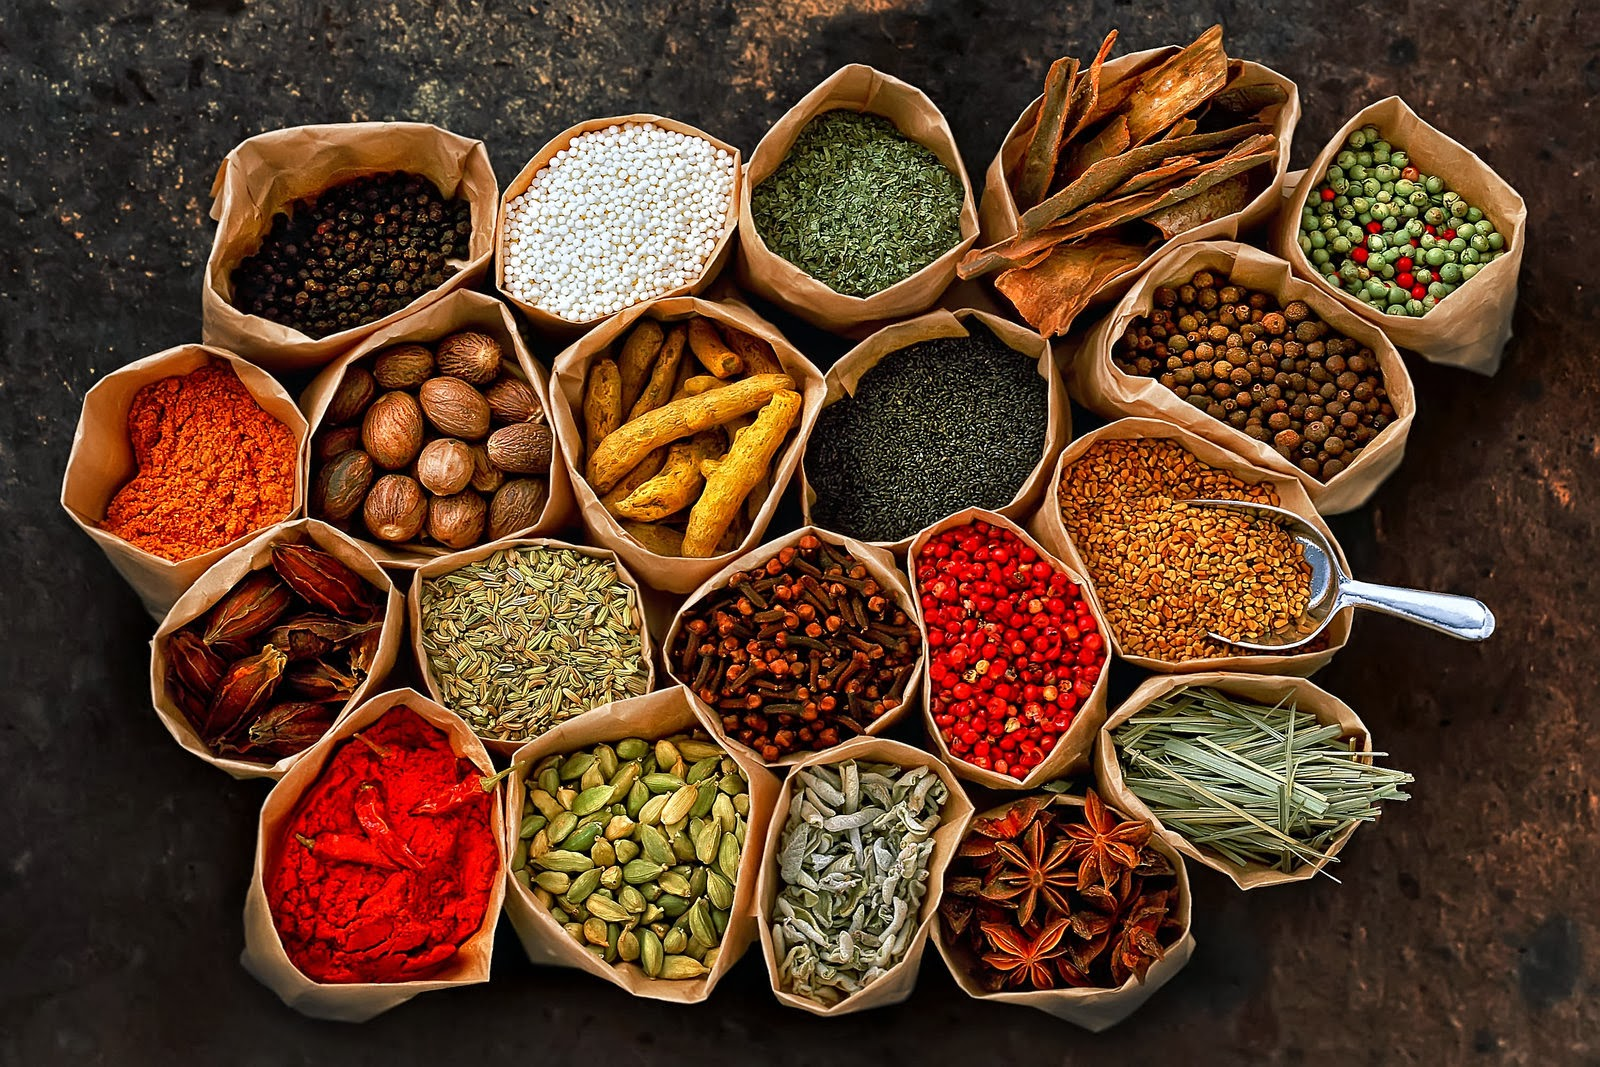 Spice It Up: 8 Super Healthy Spices And Herbs For Your Cooking